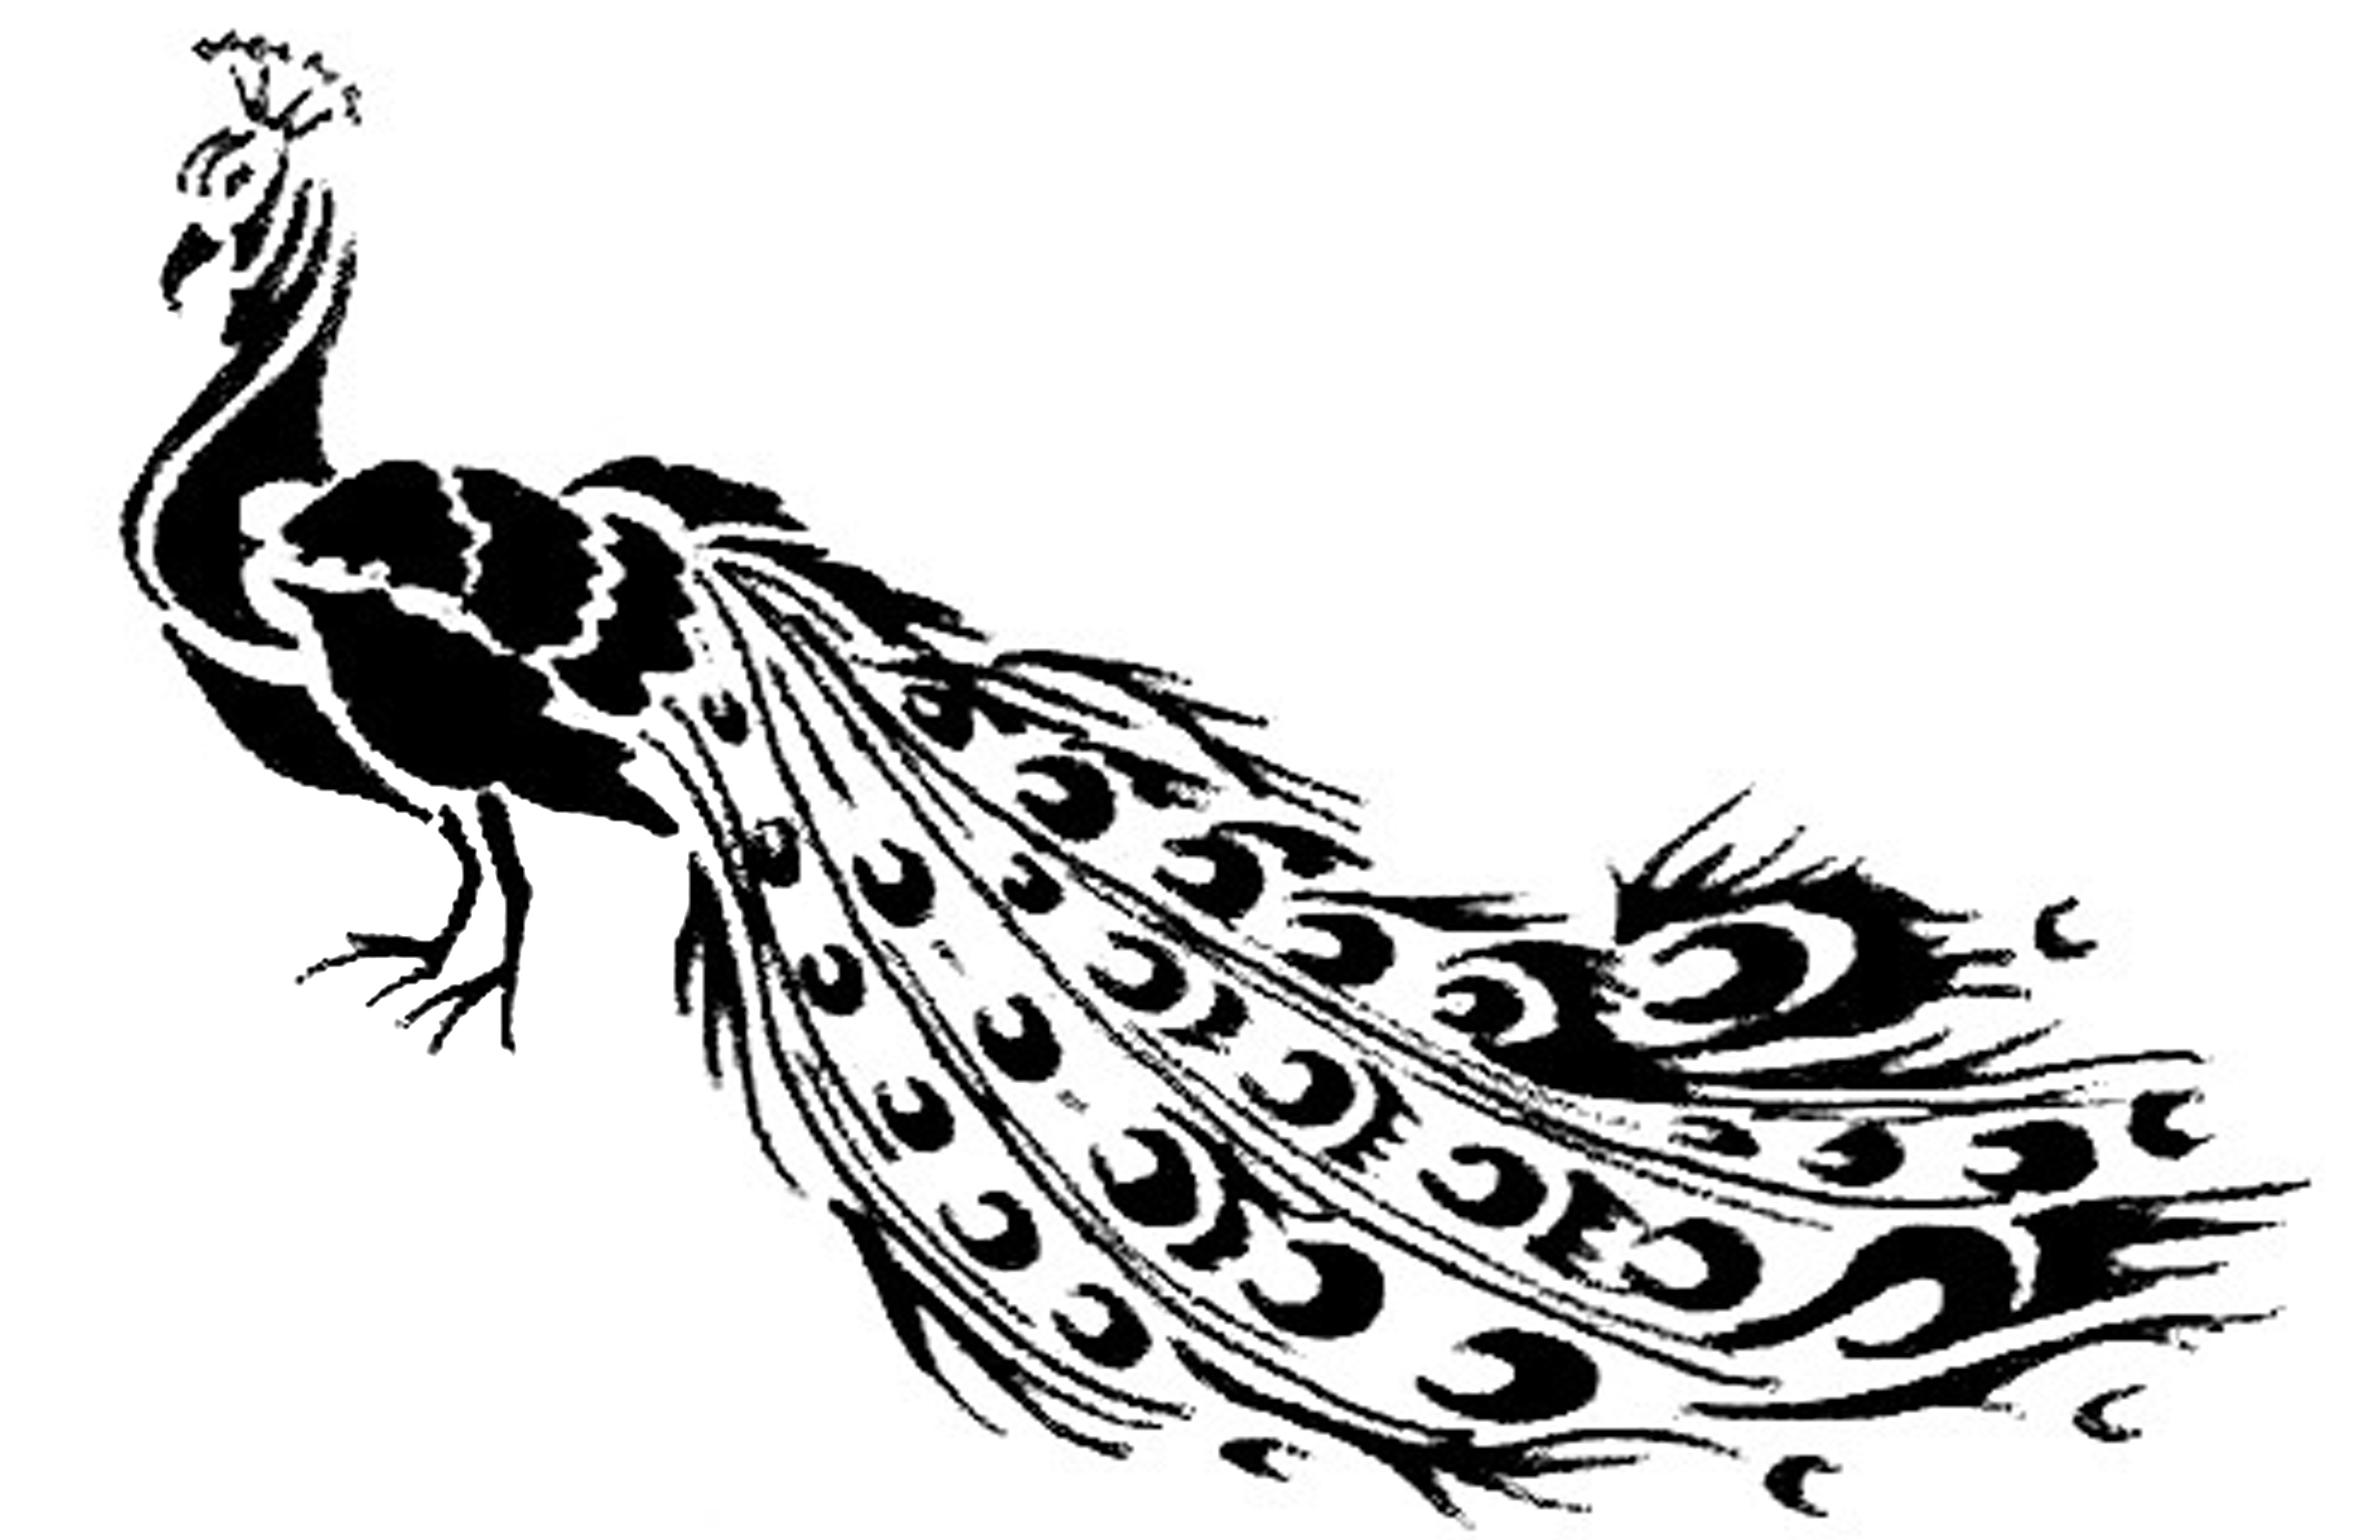 5100x3300 Peacock Black And White Drawing Peacock Drawing Lucmg